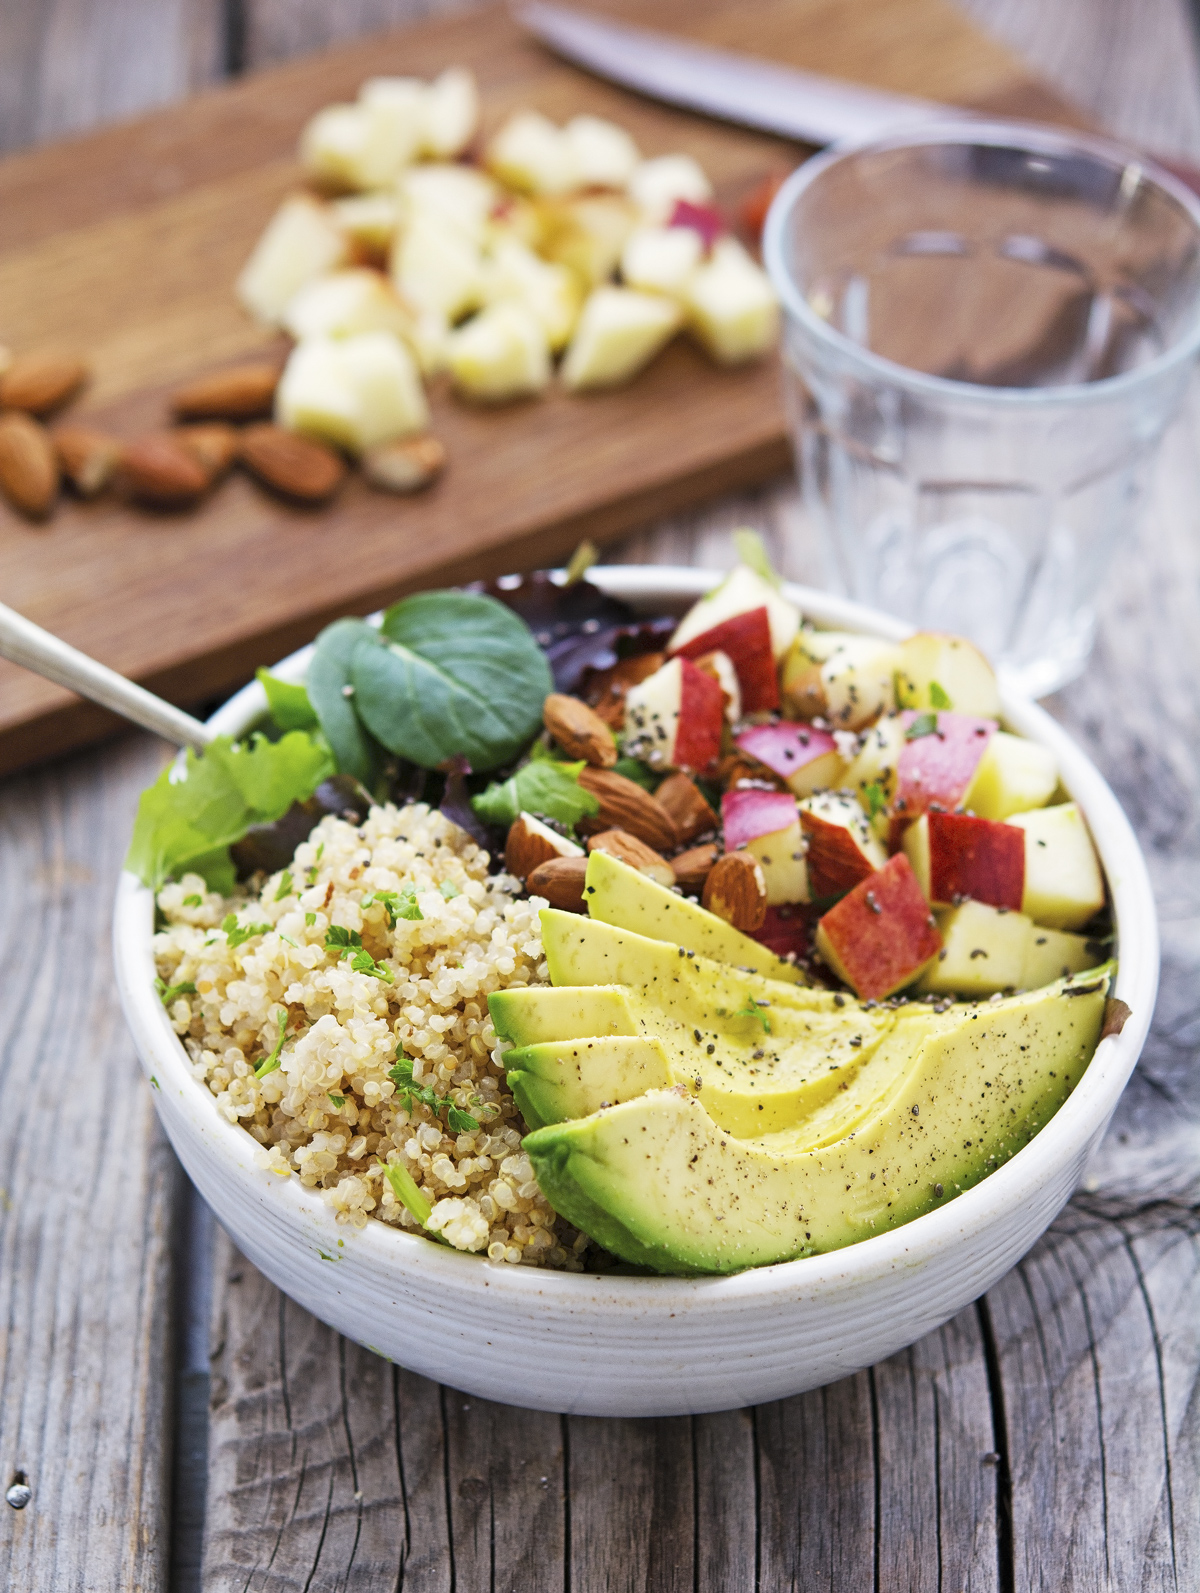 Quinoa Avocado and Apple Detox Salad